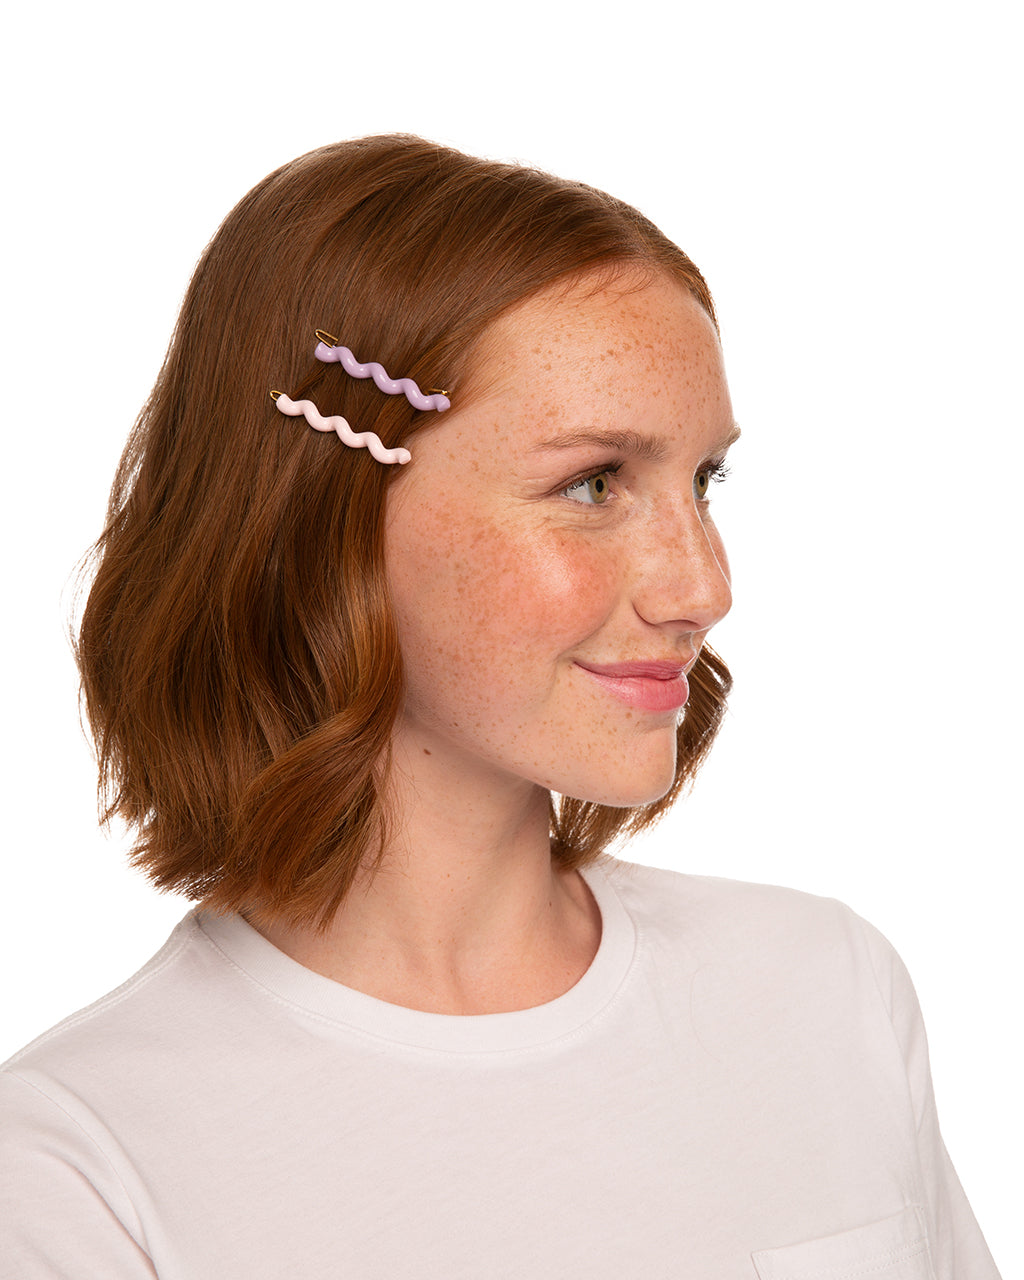 red headed model shown wearing a blush colored barrette and lilac colored barrette